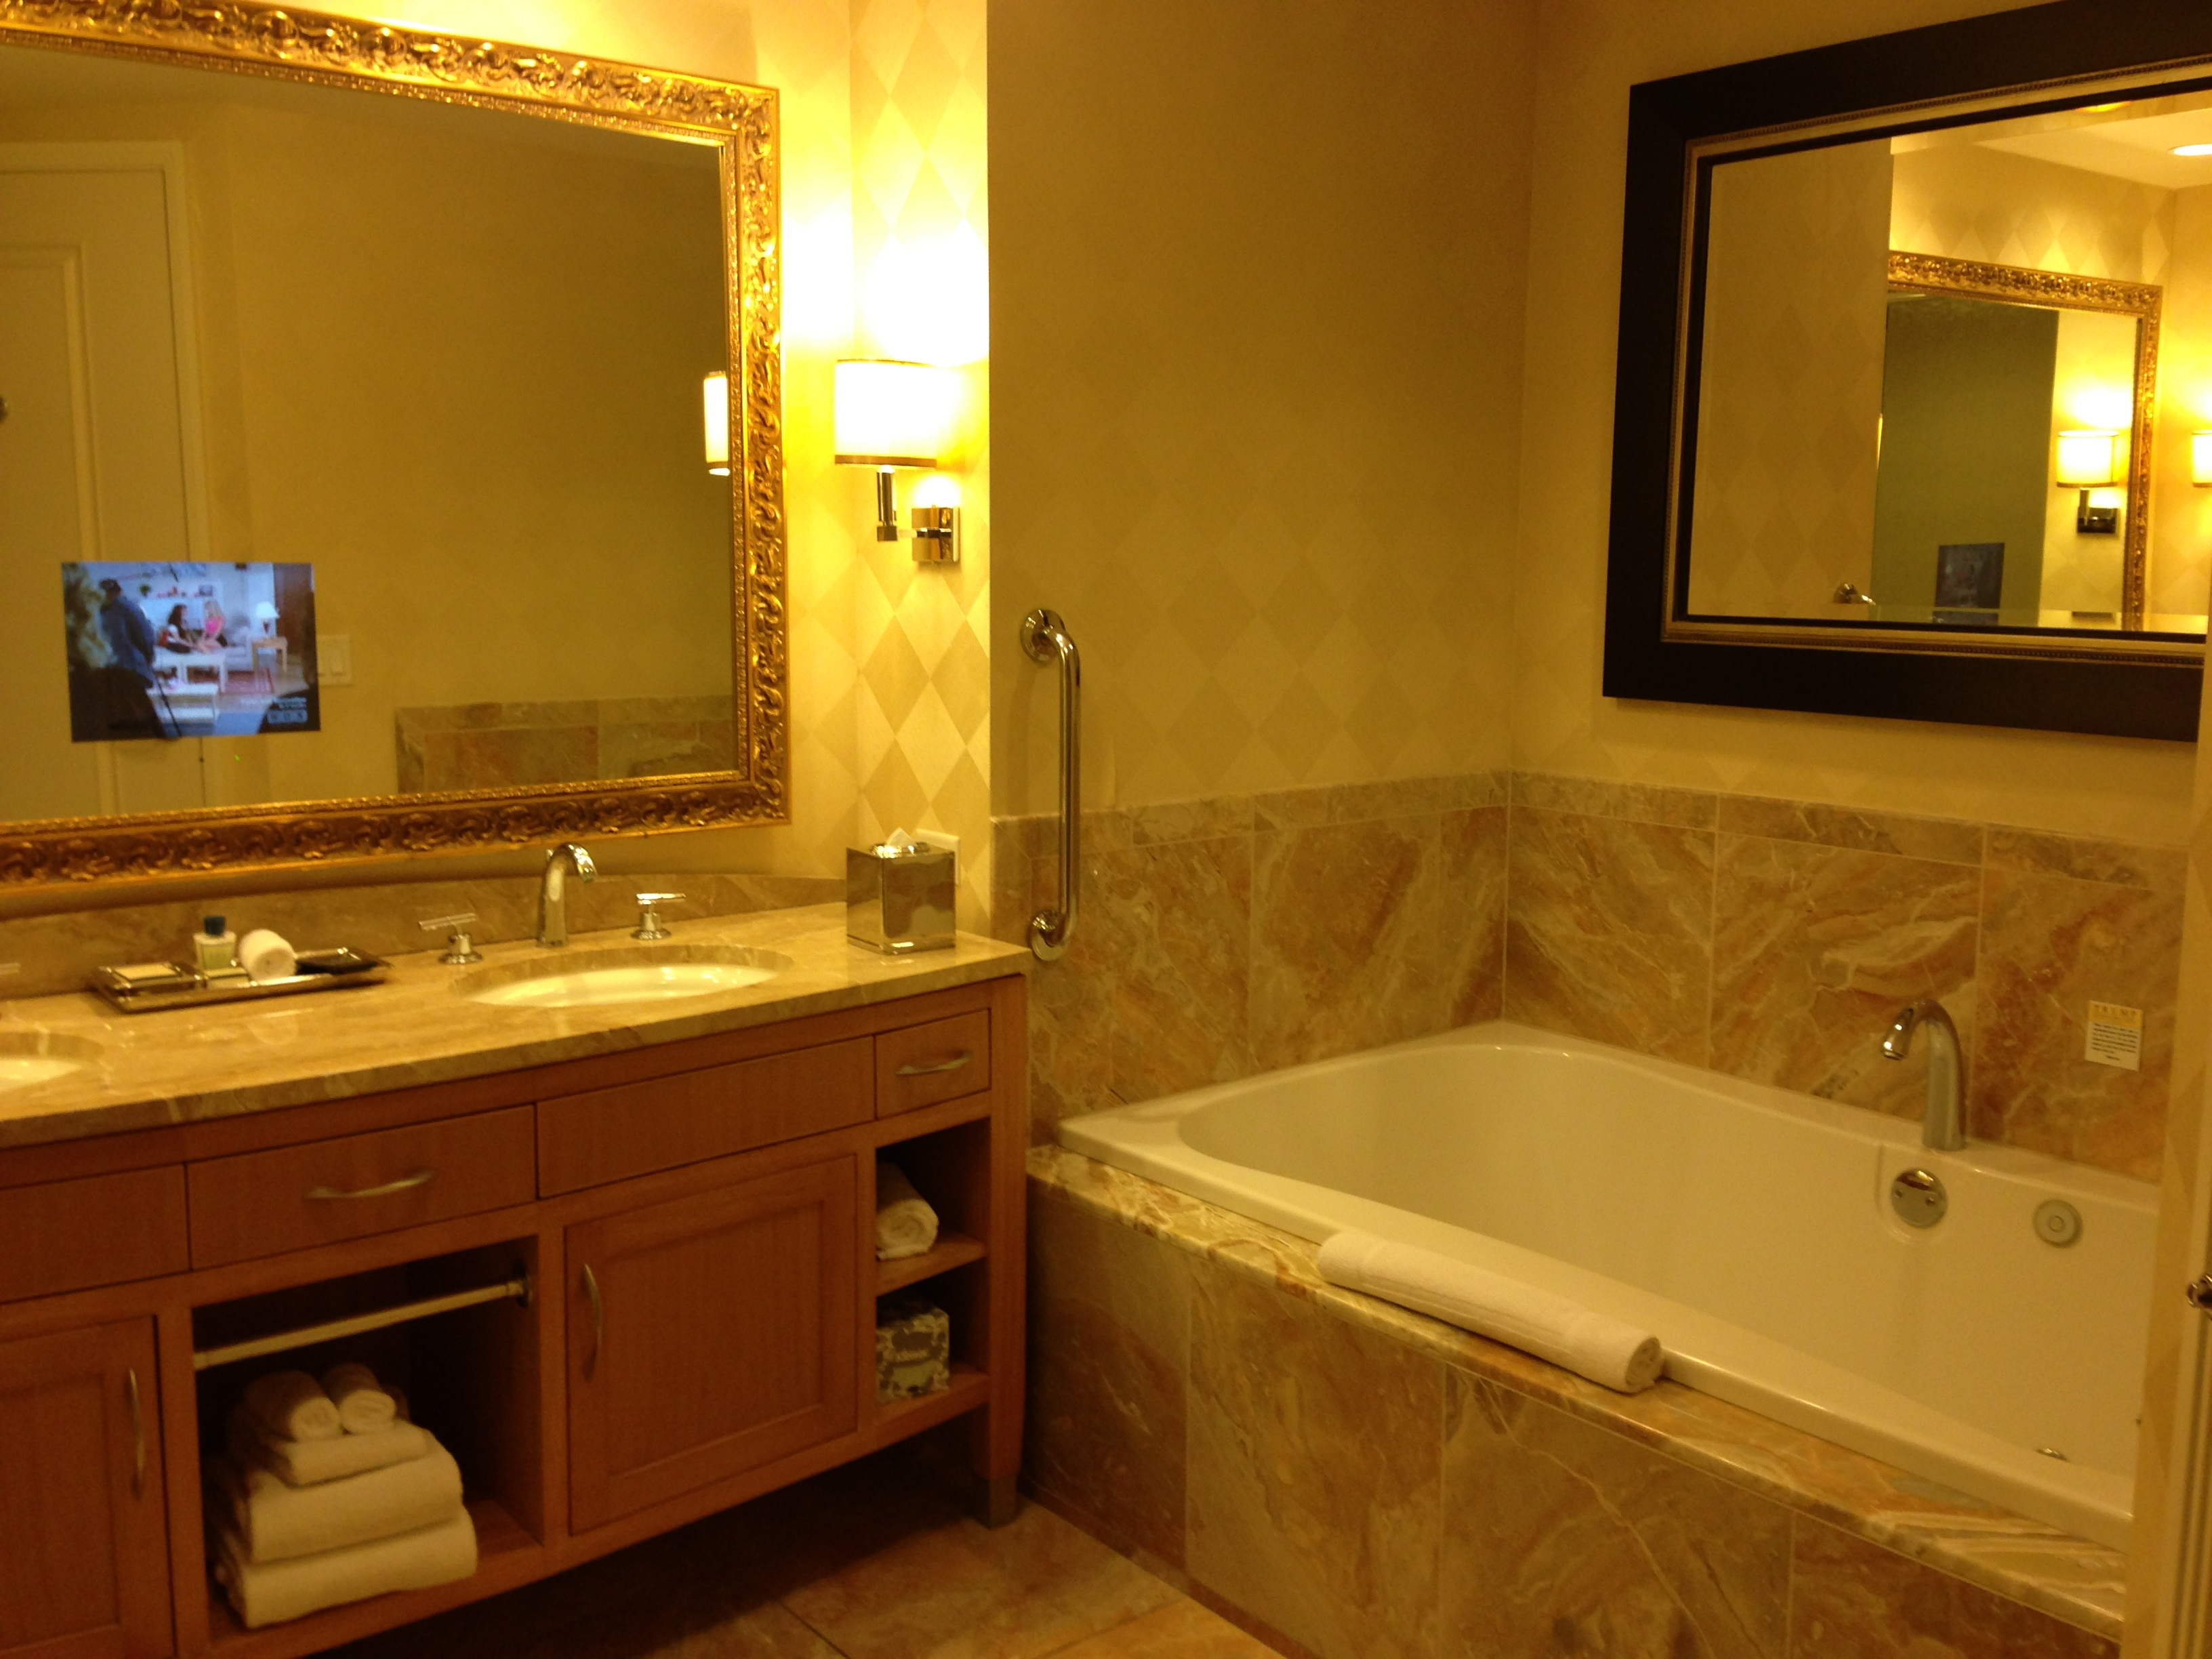 bathroom with tv built into the mirror - Bathroom Accessories Las Vegas